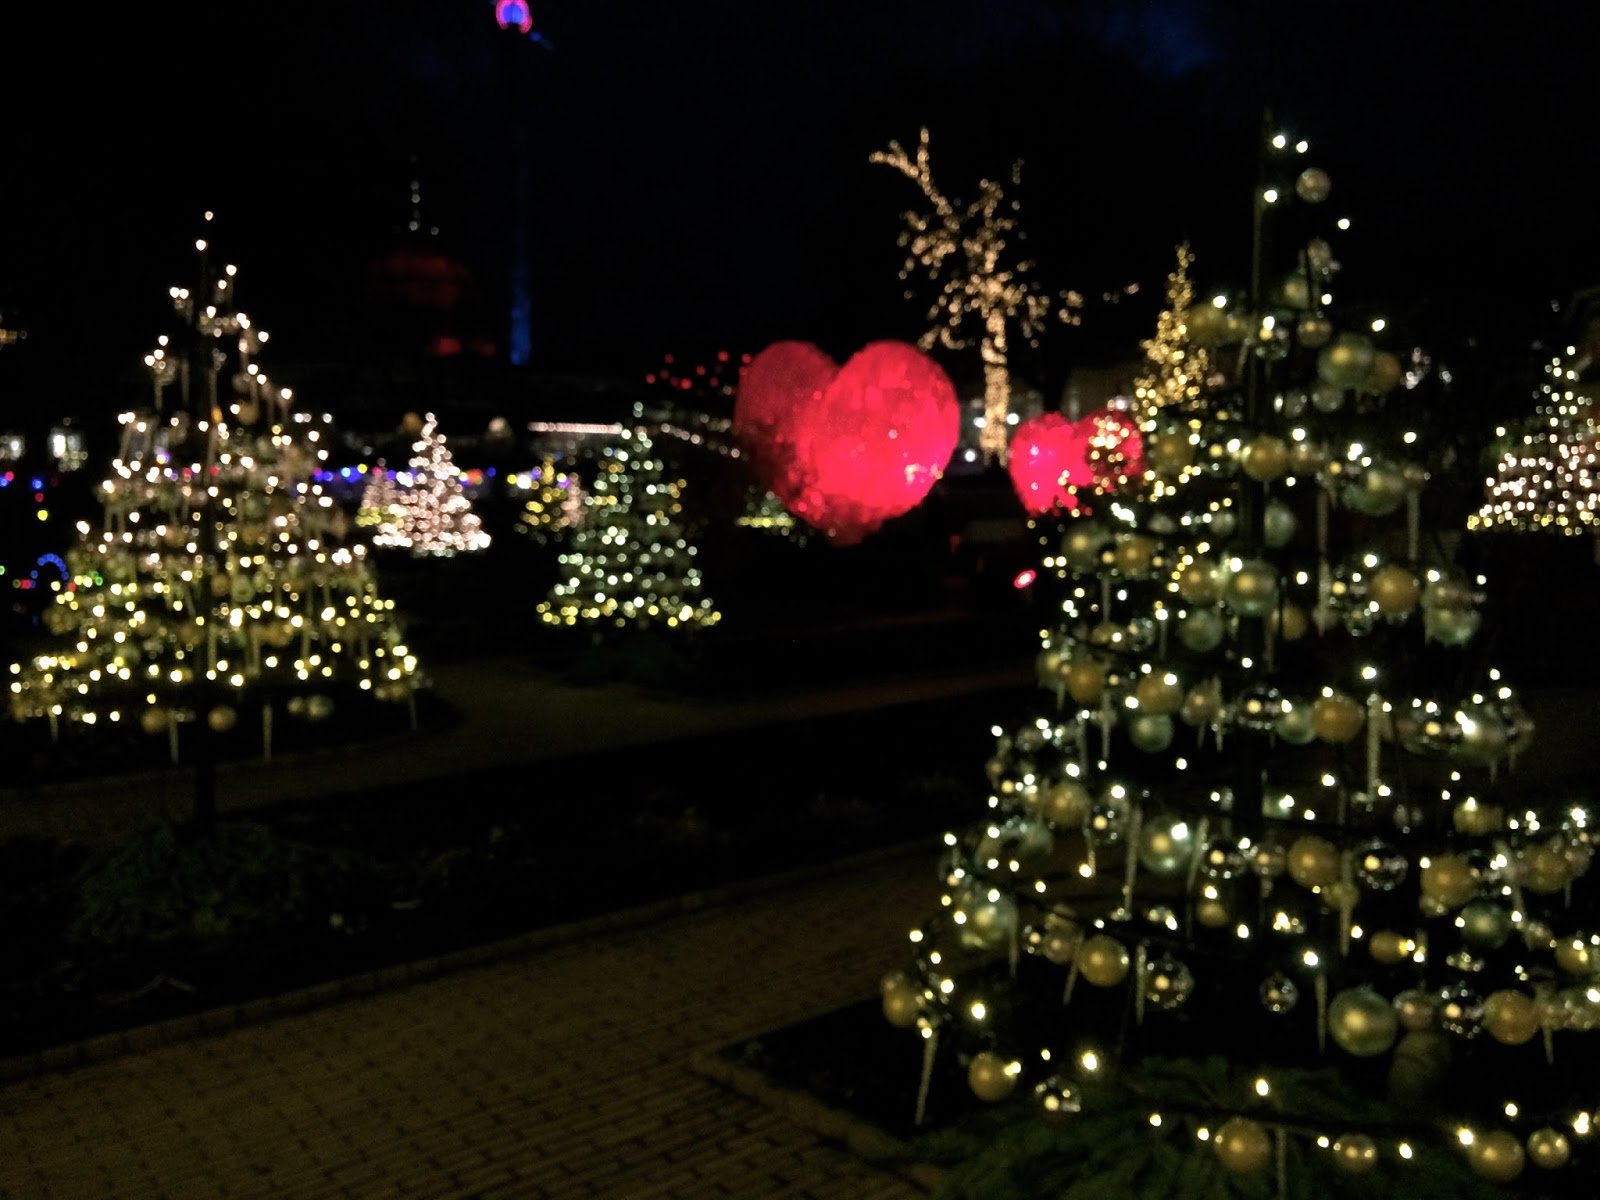 Copenhagen at Christmas - Tivoli